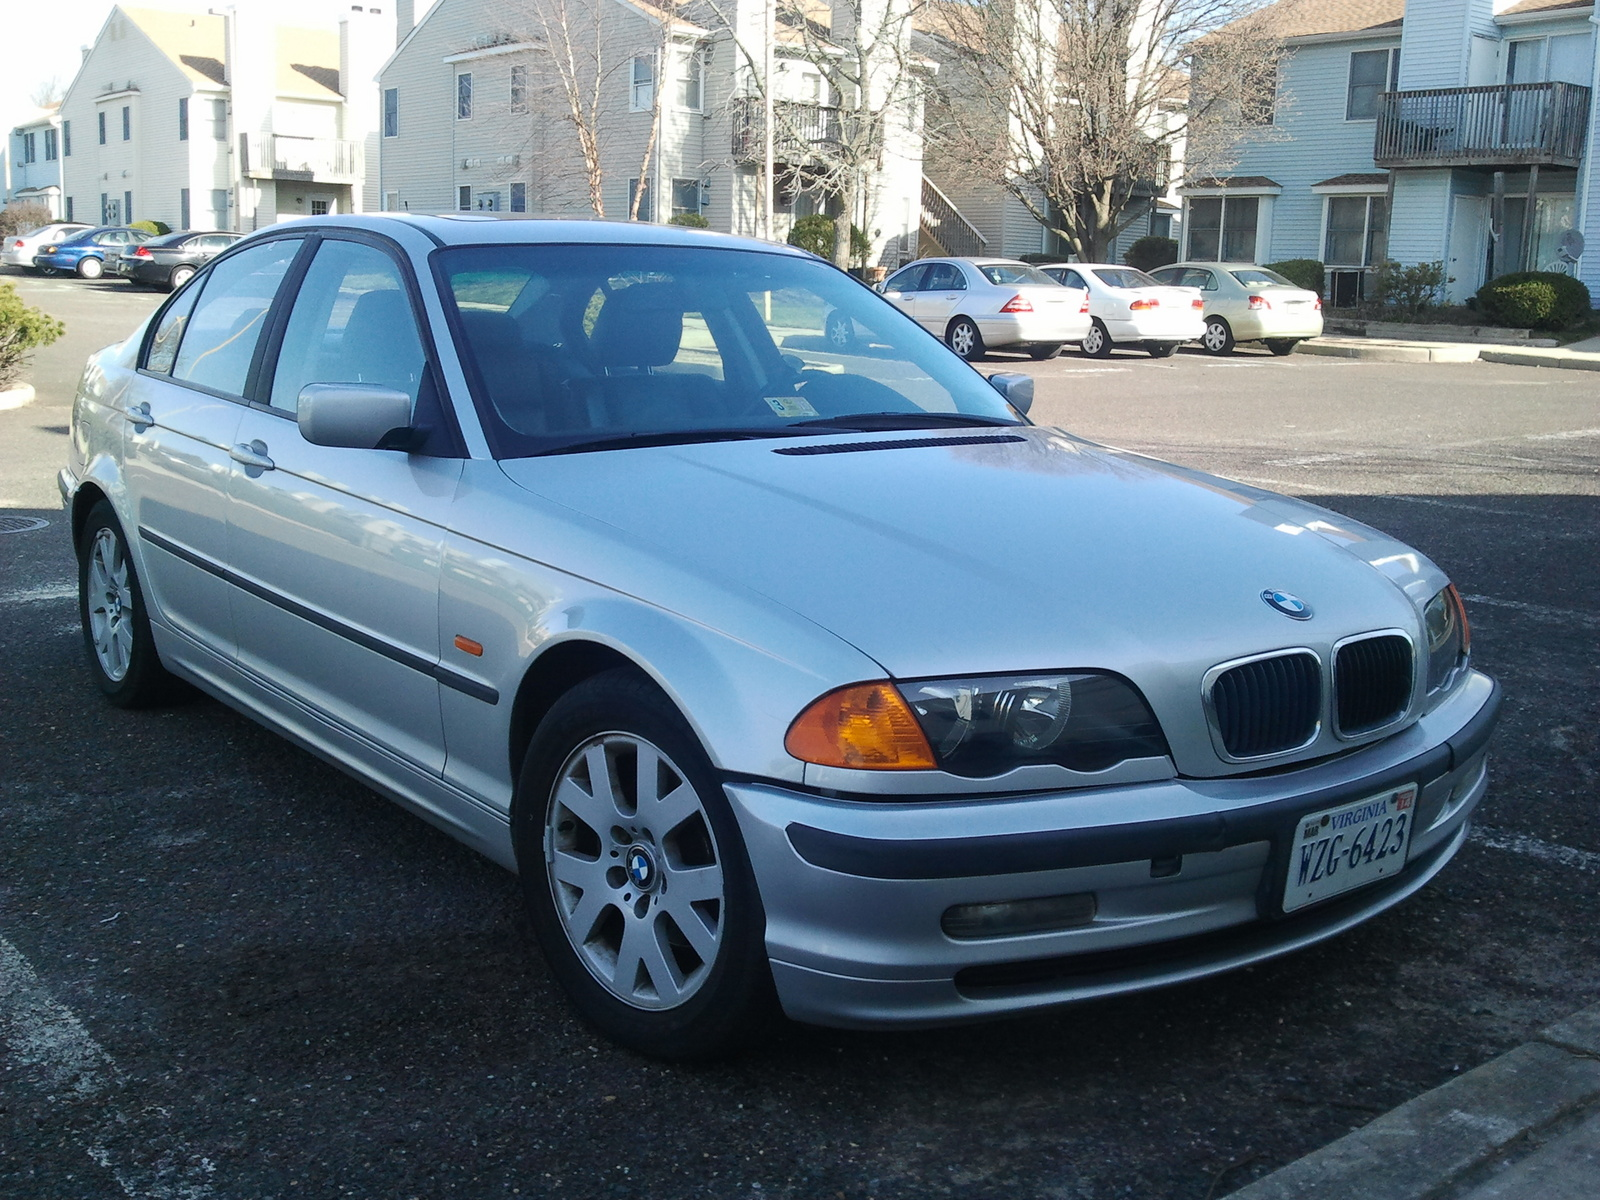 BMW 3 series 330Ci 1999 photo - 3